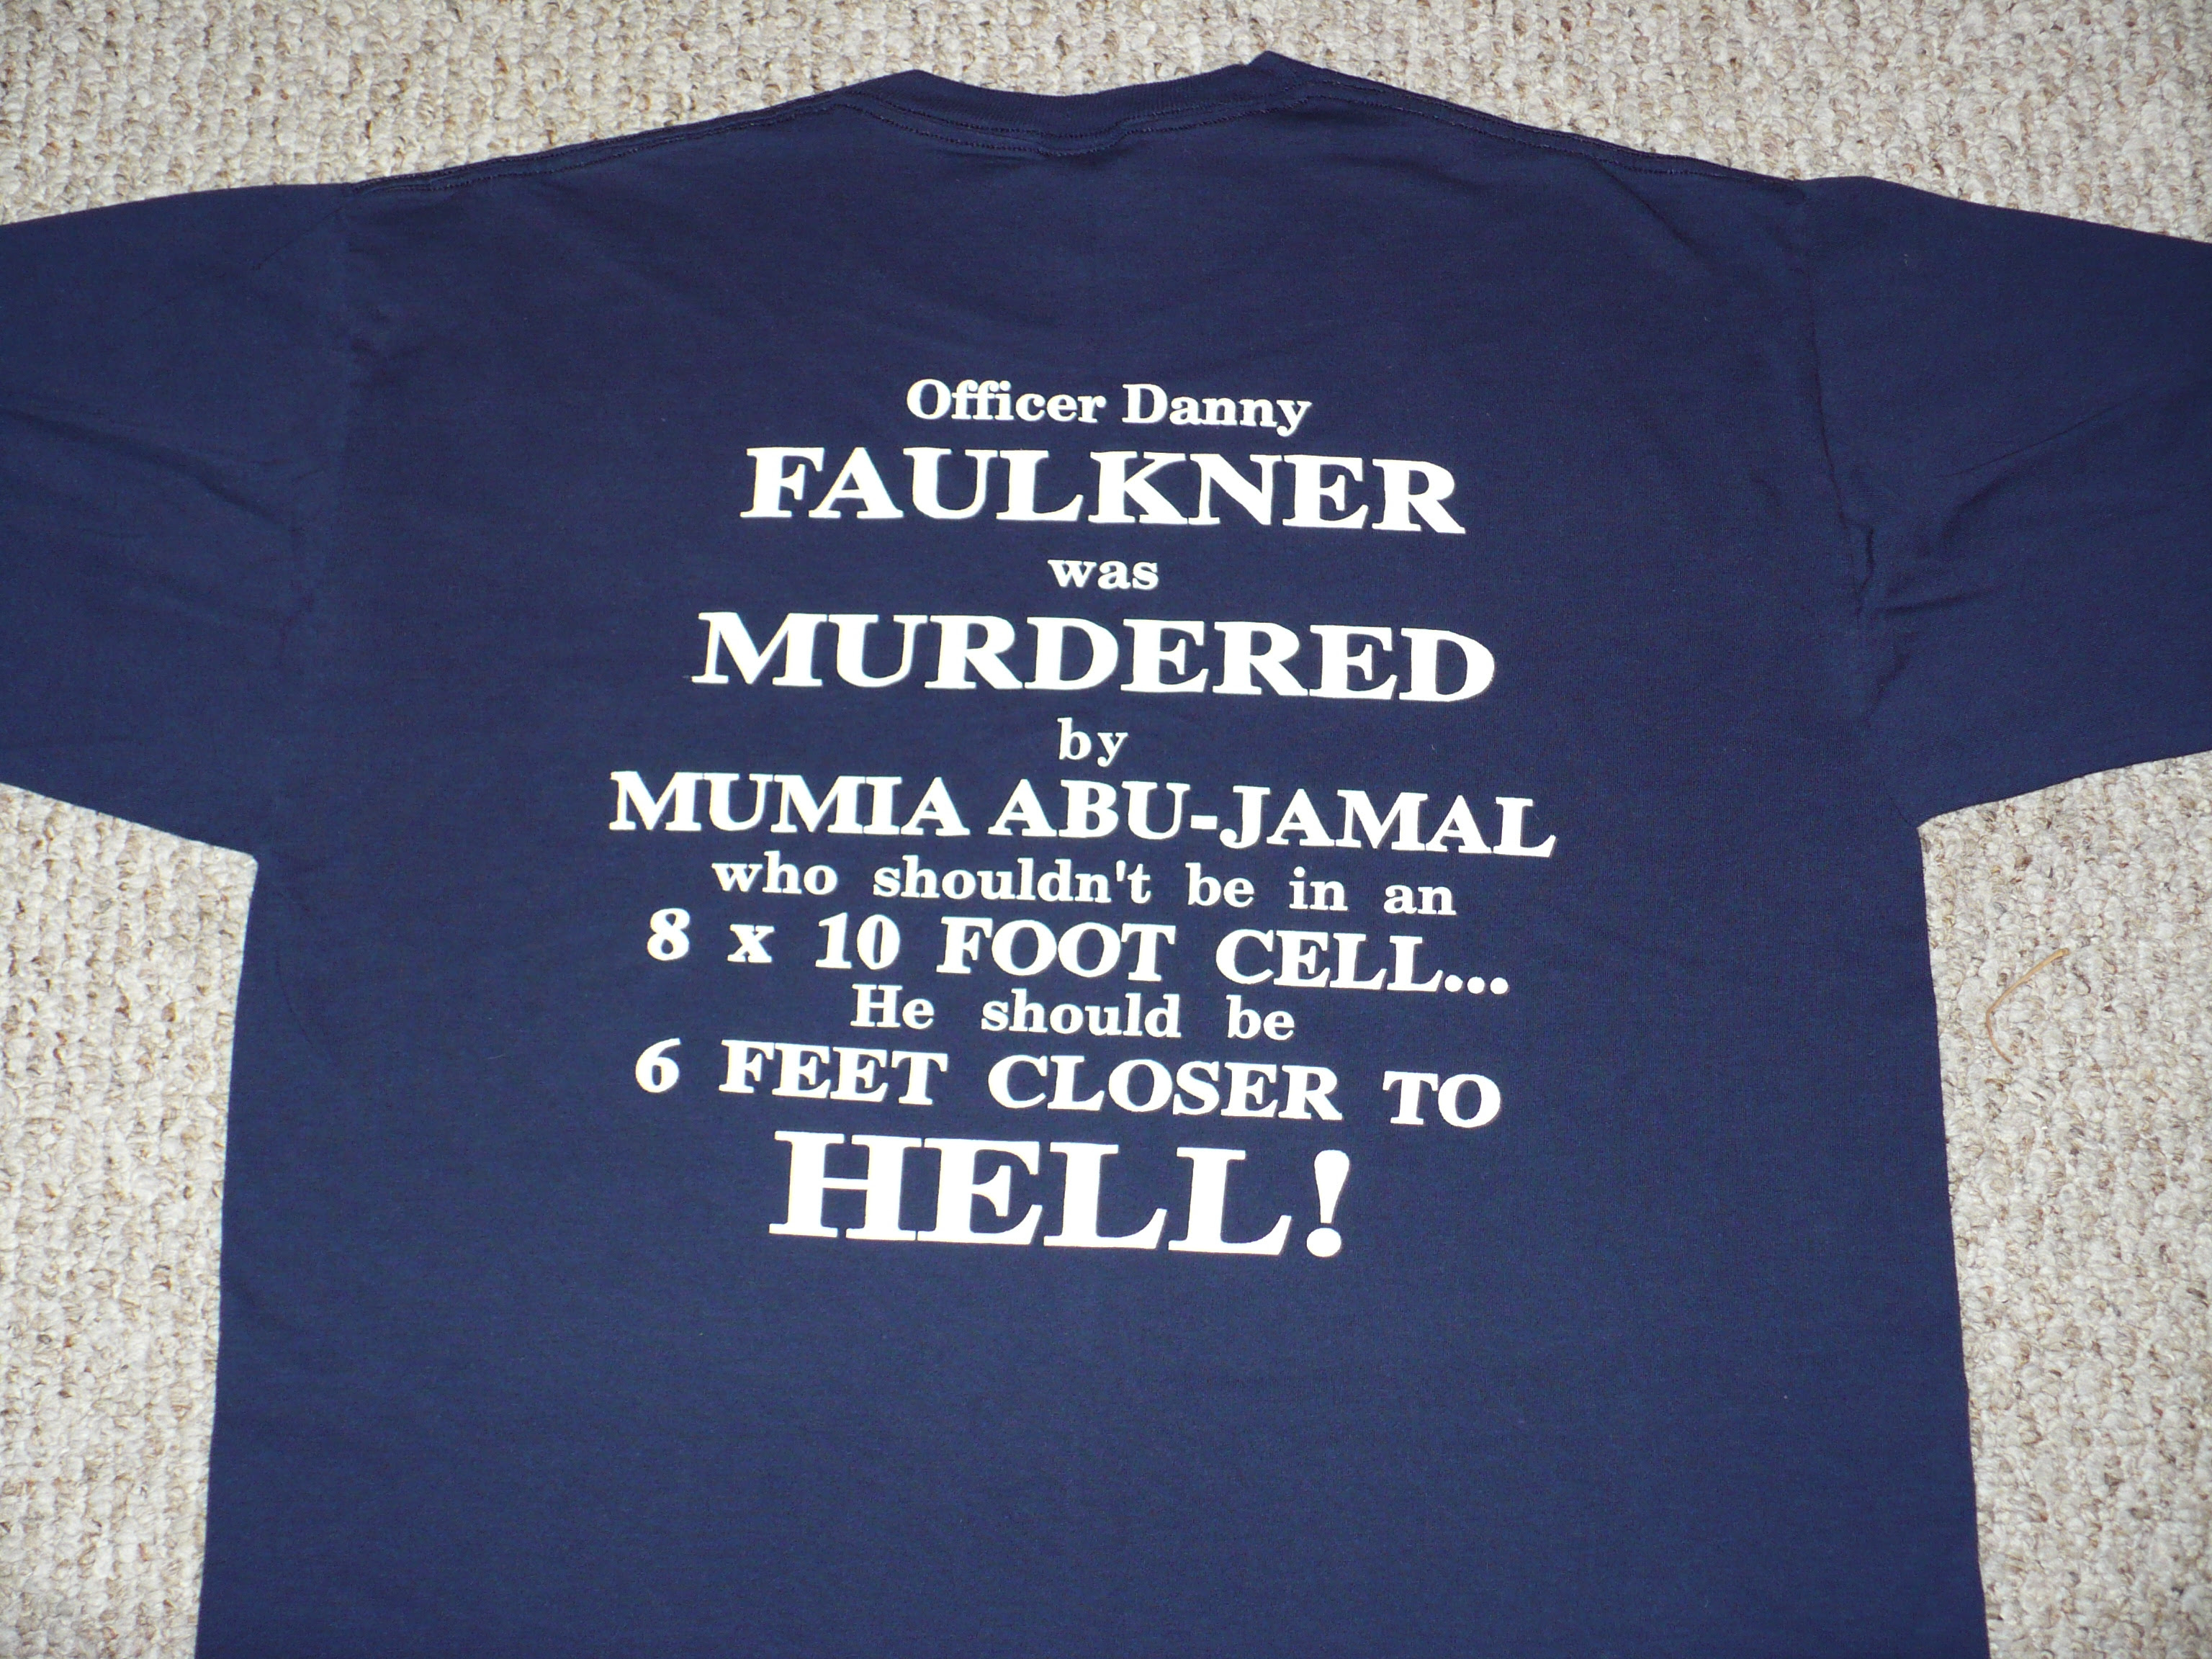 http://upload.wikimedia.org/wikipedia/en/e/e8/Photo_of_anti_Mumia_Abu_Jamal_T-Shirt.JPG